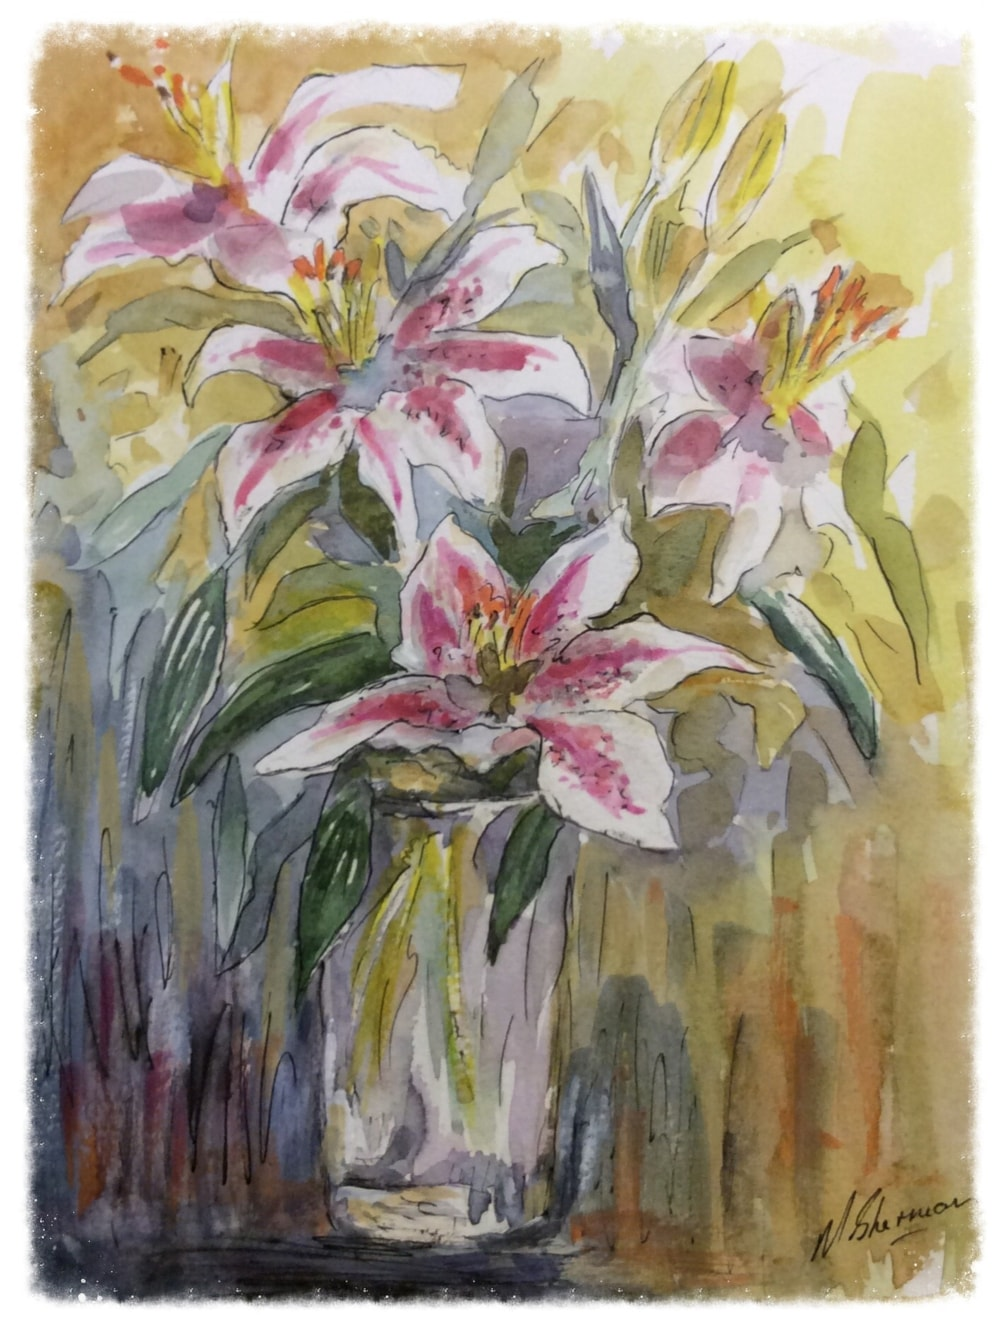 My Favourite Lilies